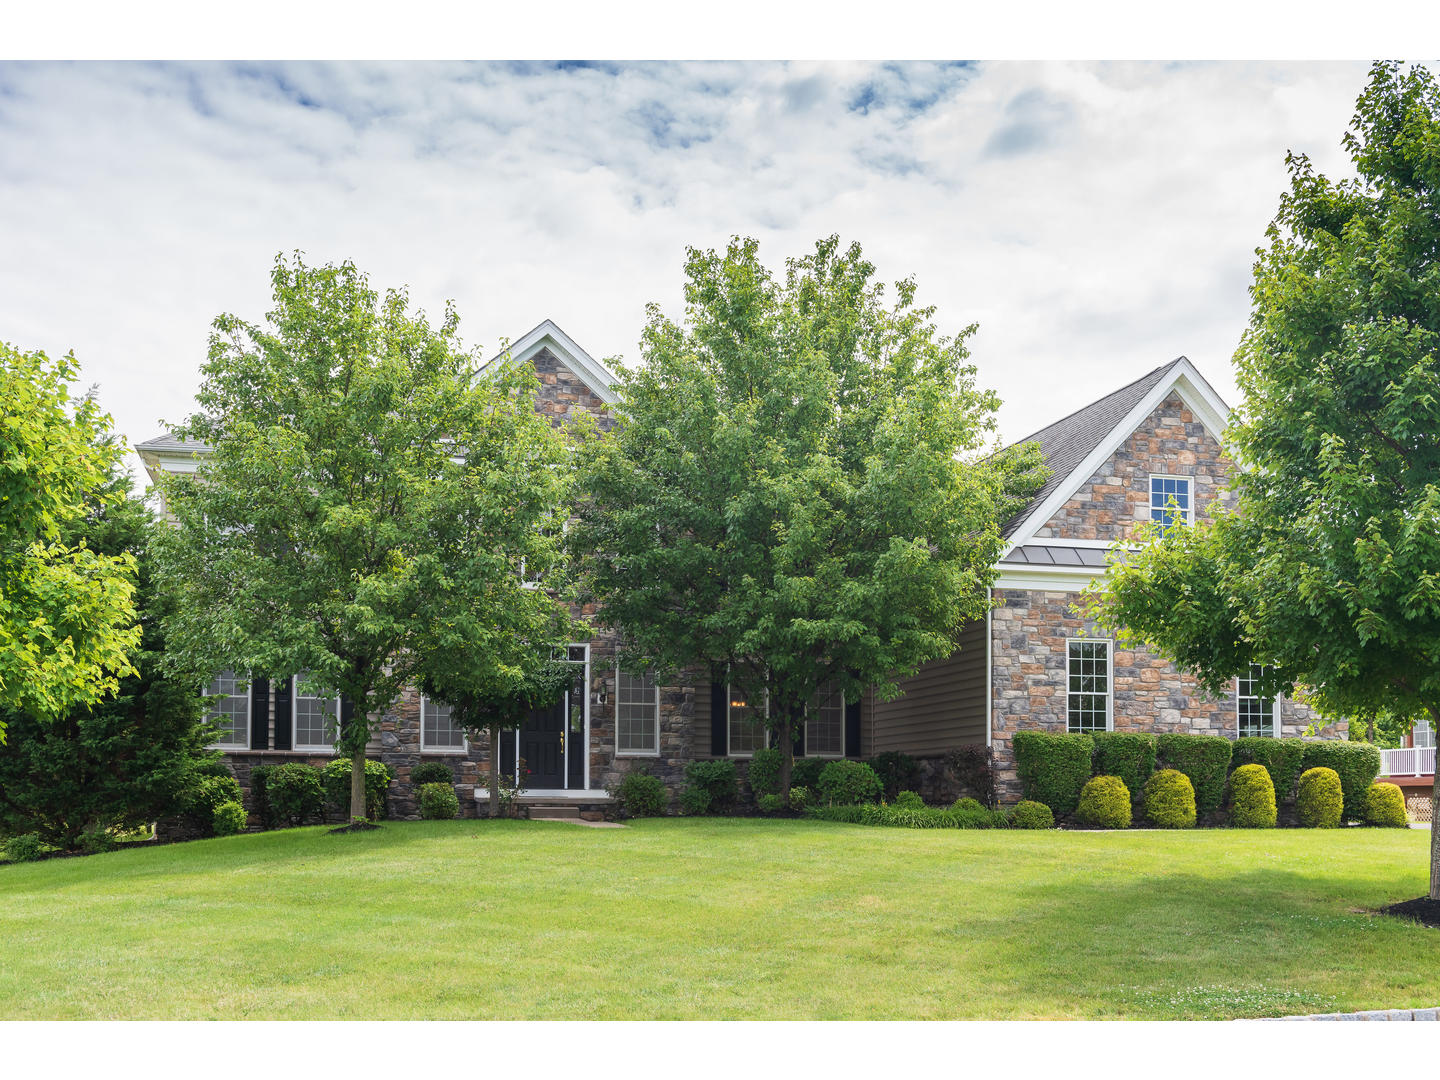 71 Goldfinch Circle, Phoenixville, P